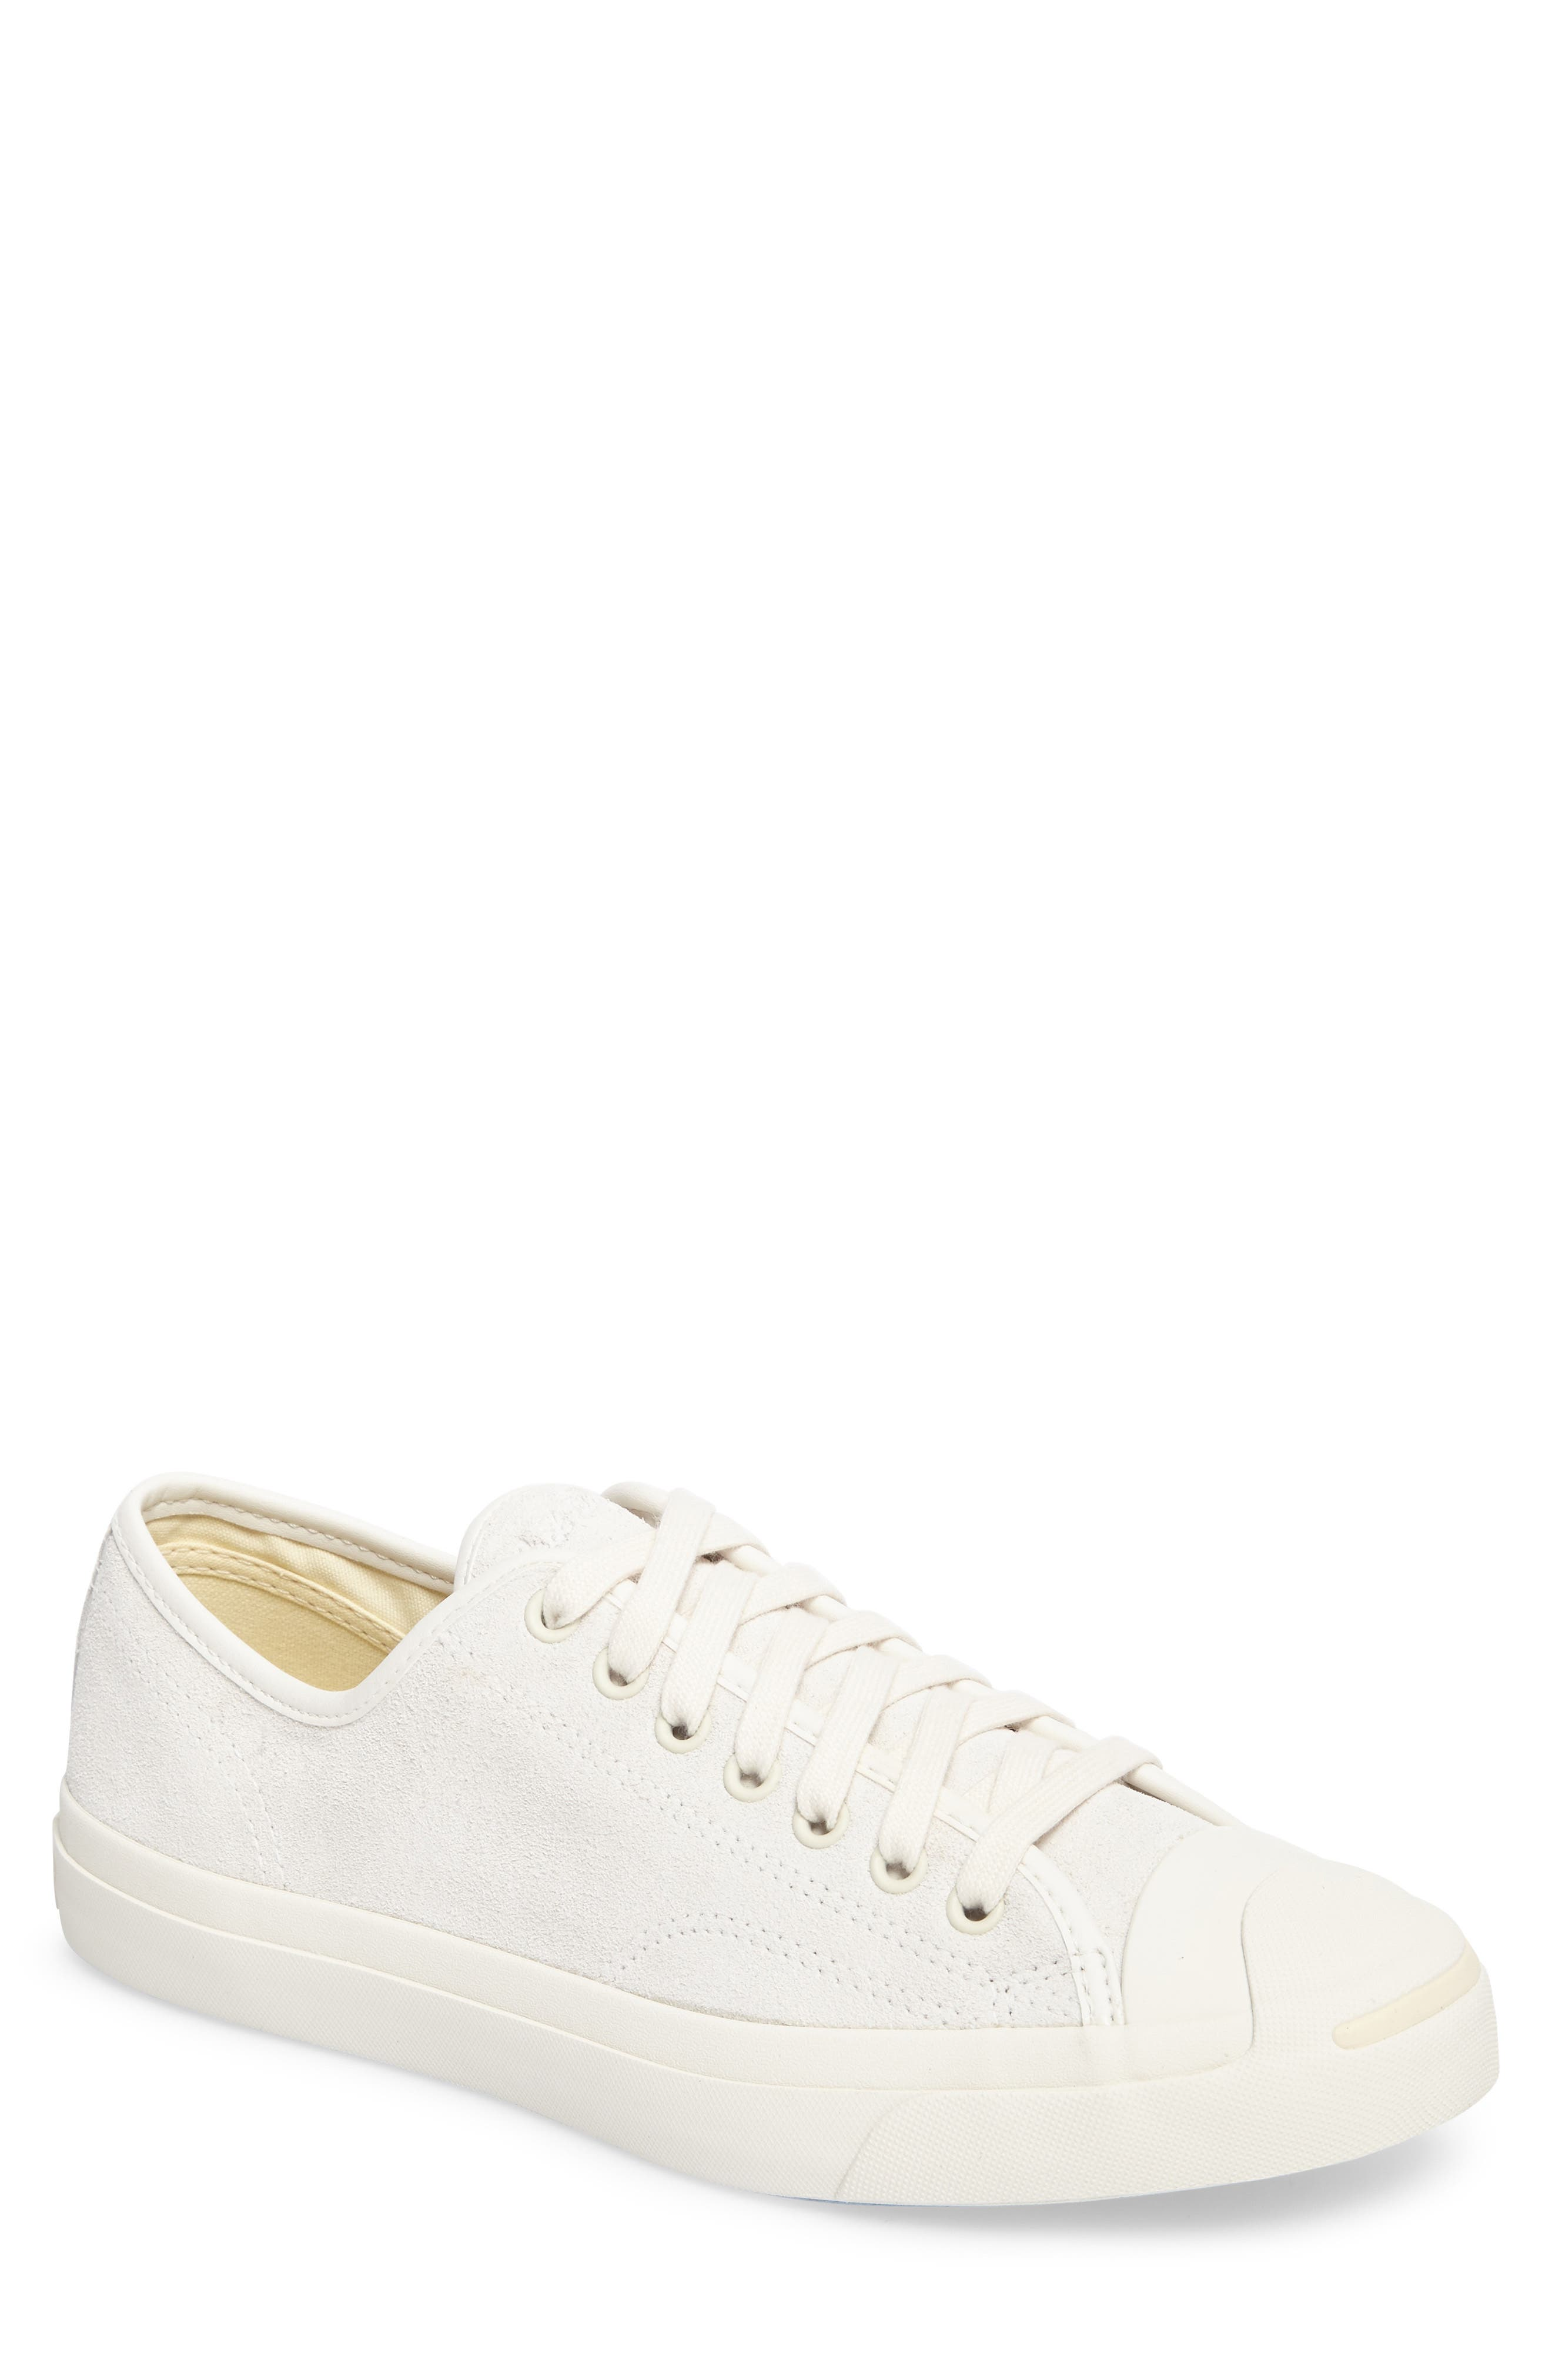 Jack Purcell Sneaker,                             Main thumbnail 1, color,                             020